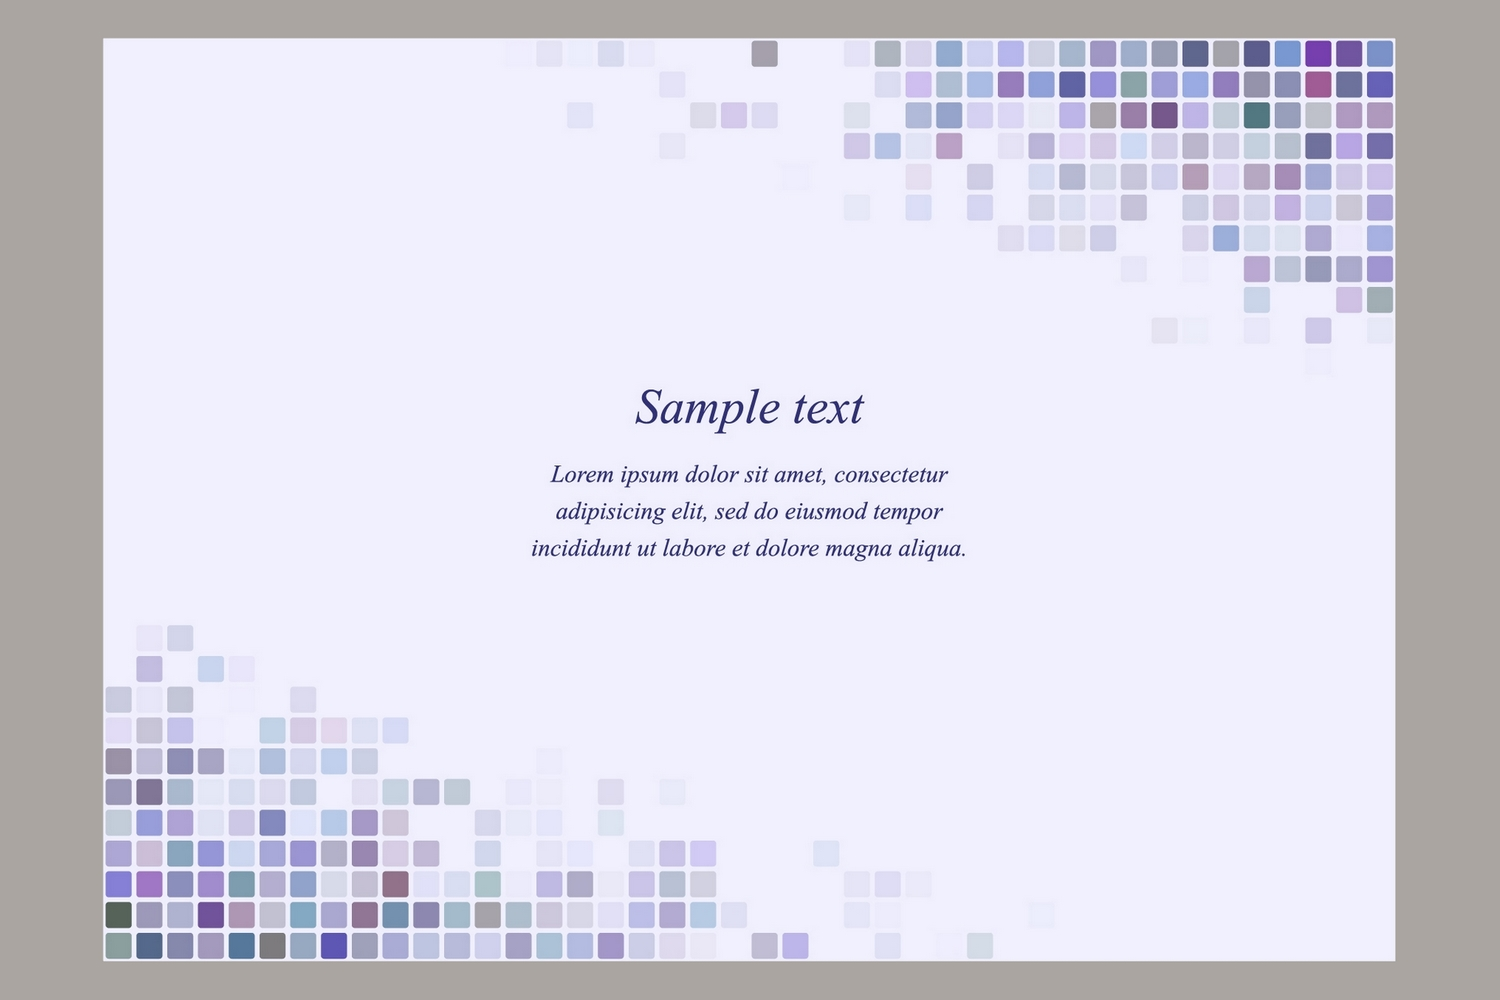 40 square mosaic page templates (AI, EPS, JPG 5000x5000) example image 3